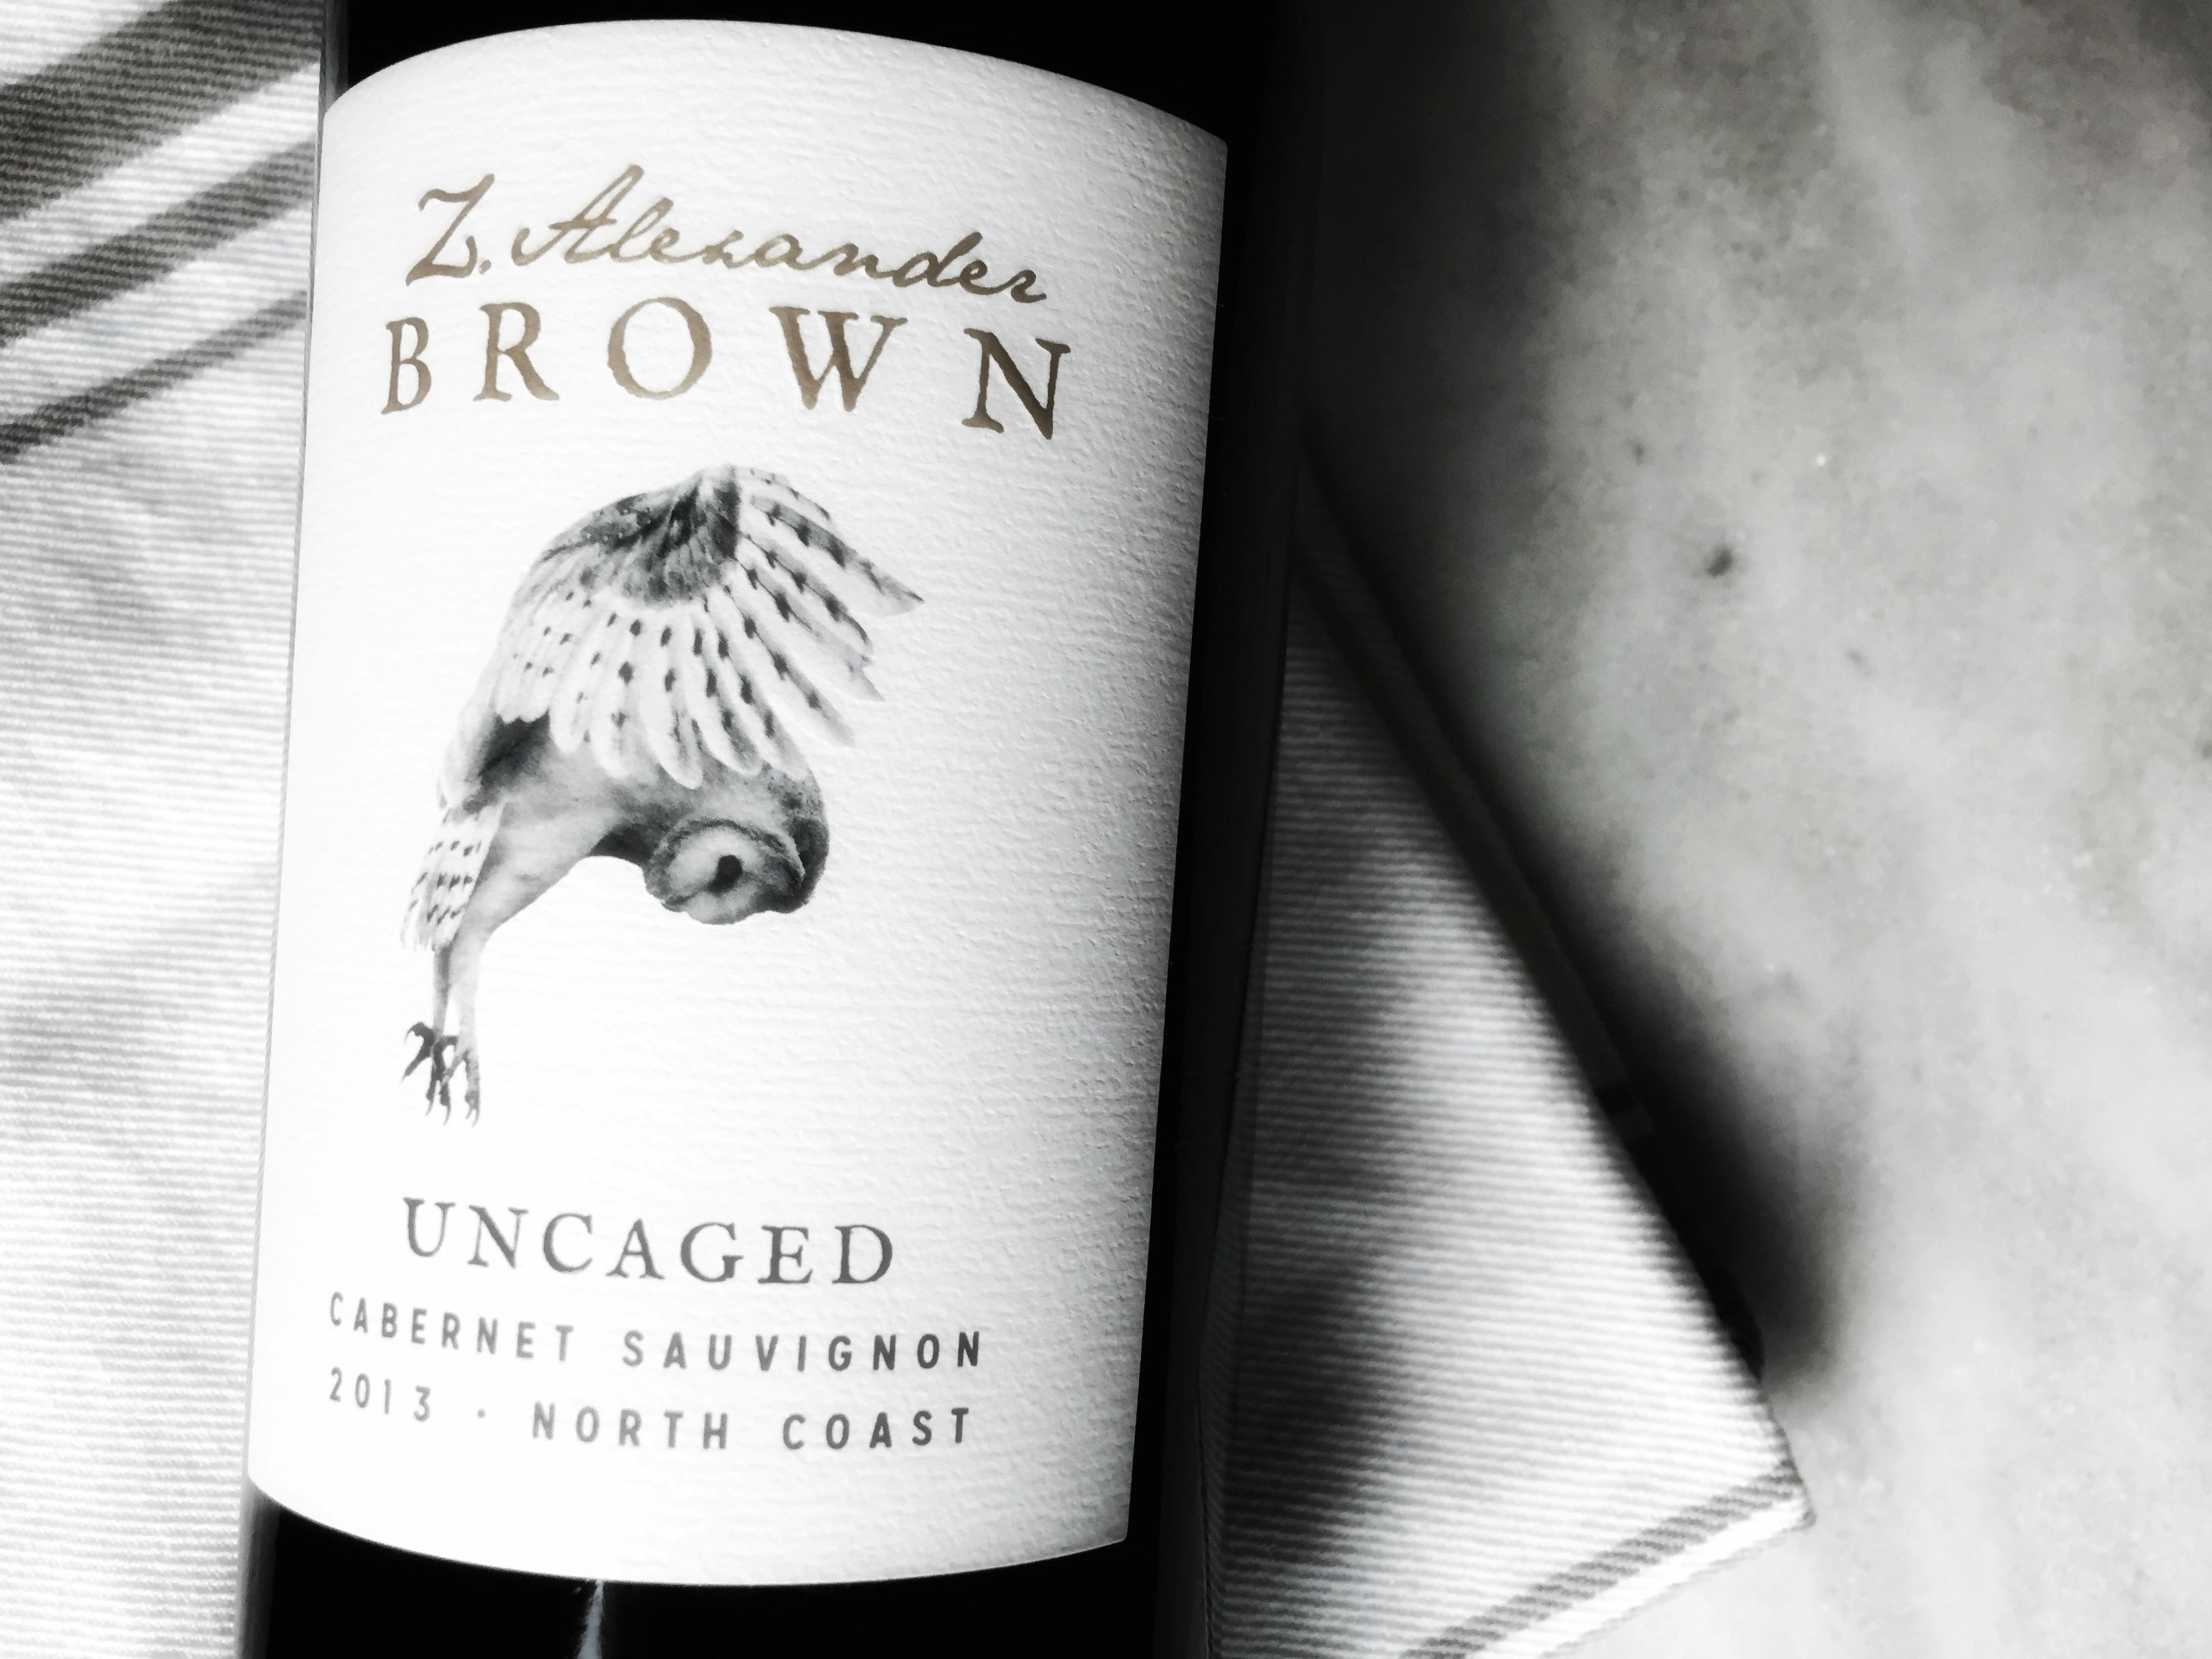 Zac Brown S Cabernet And His Awesome Owl Label Make For A Perfectly Hygge And Cozy Fall Evening Selection Livehygg Wine And Spirits Wine Lovers Wine Bottle